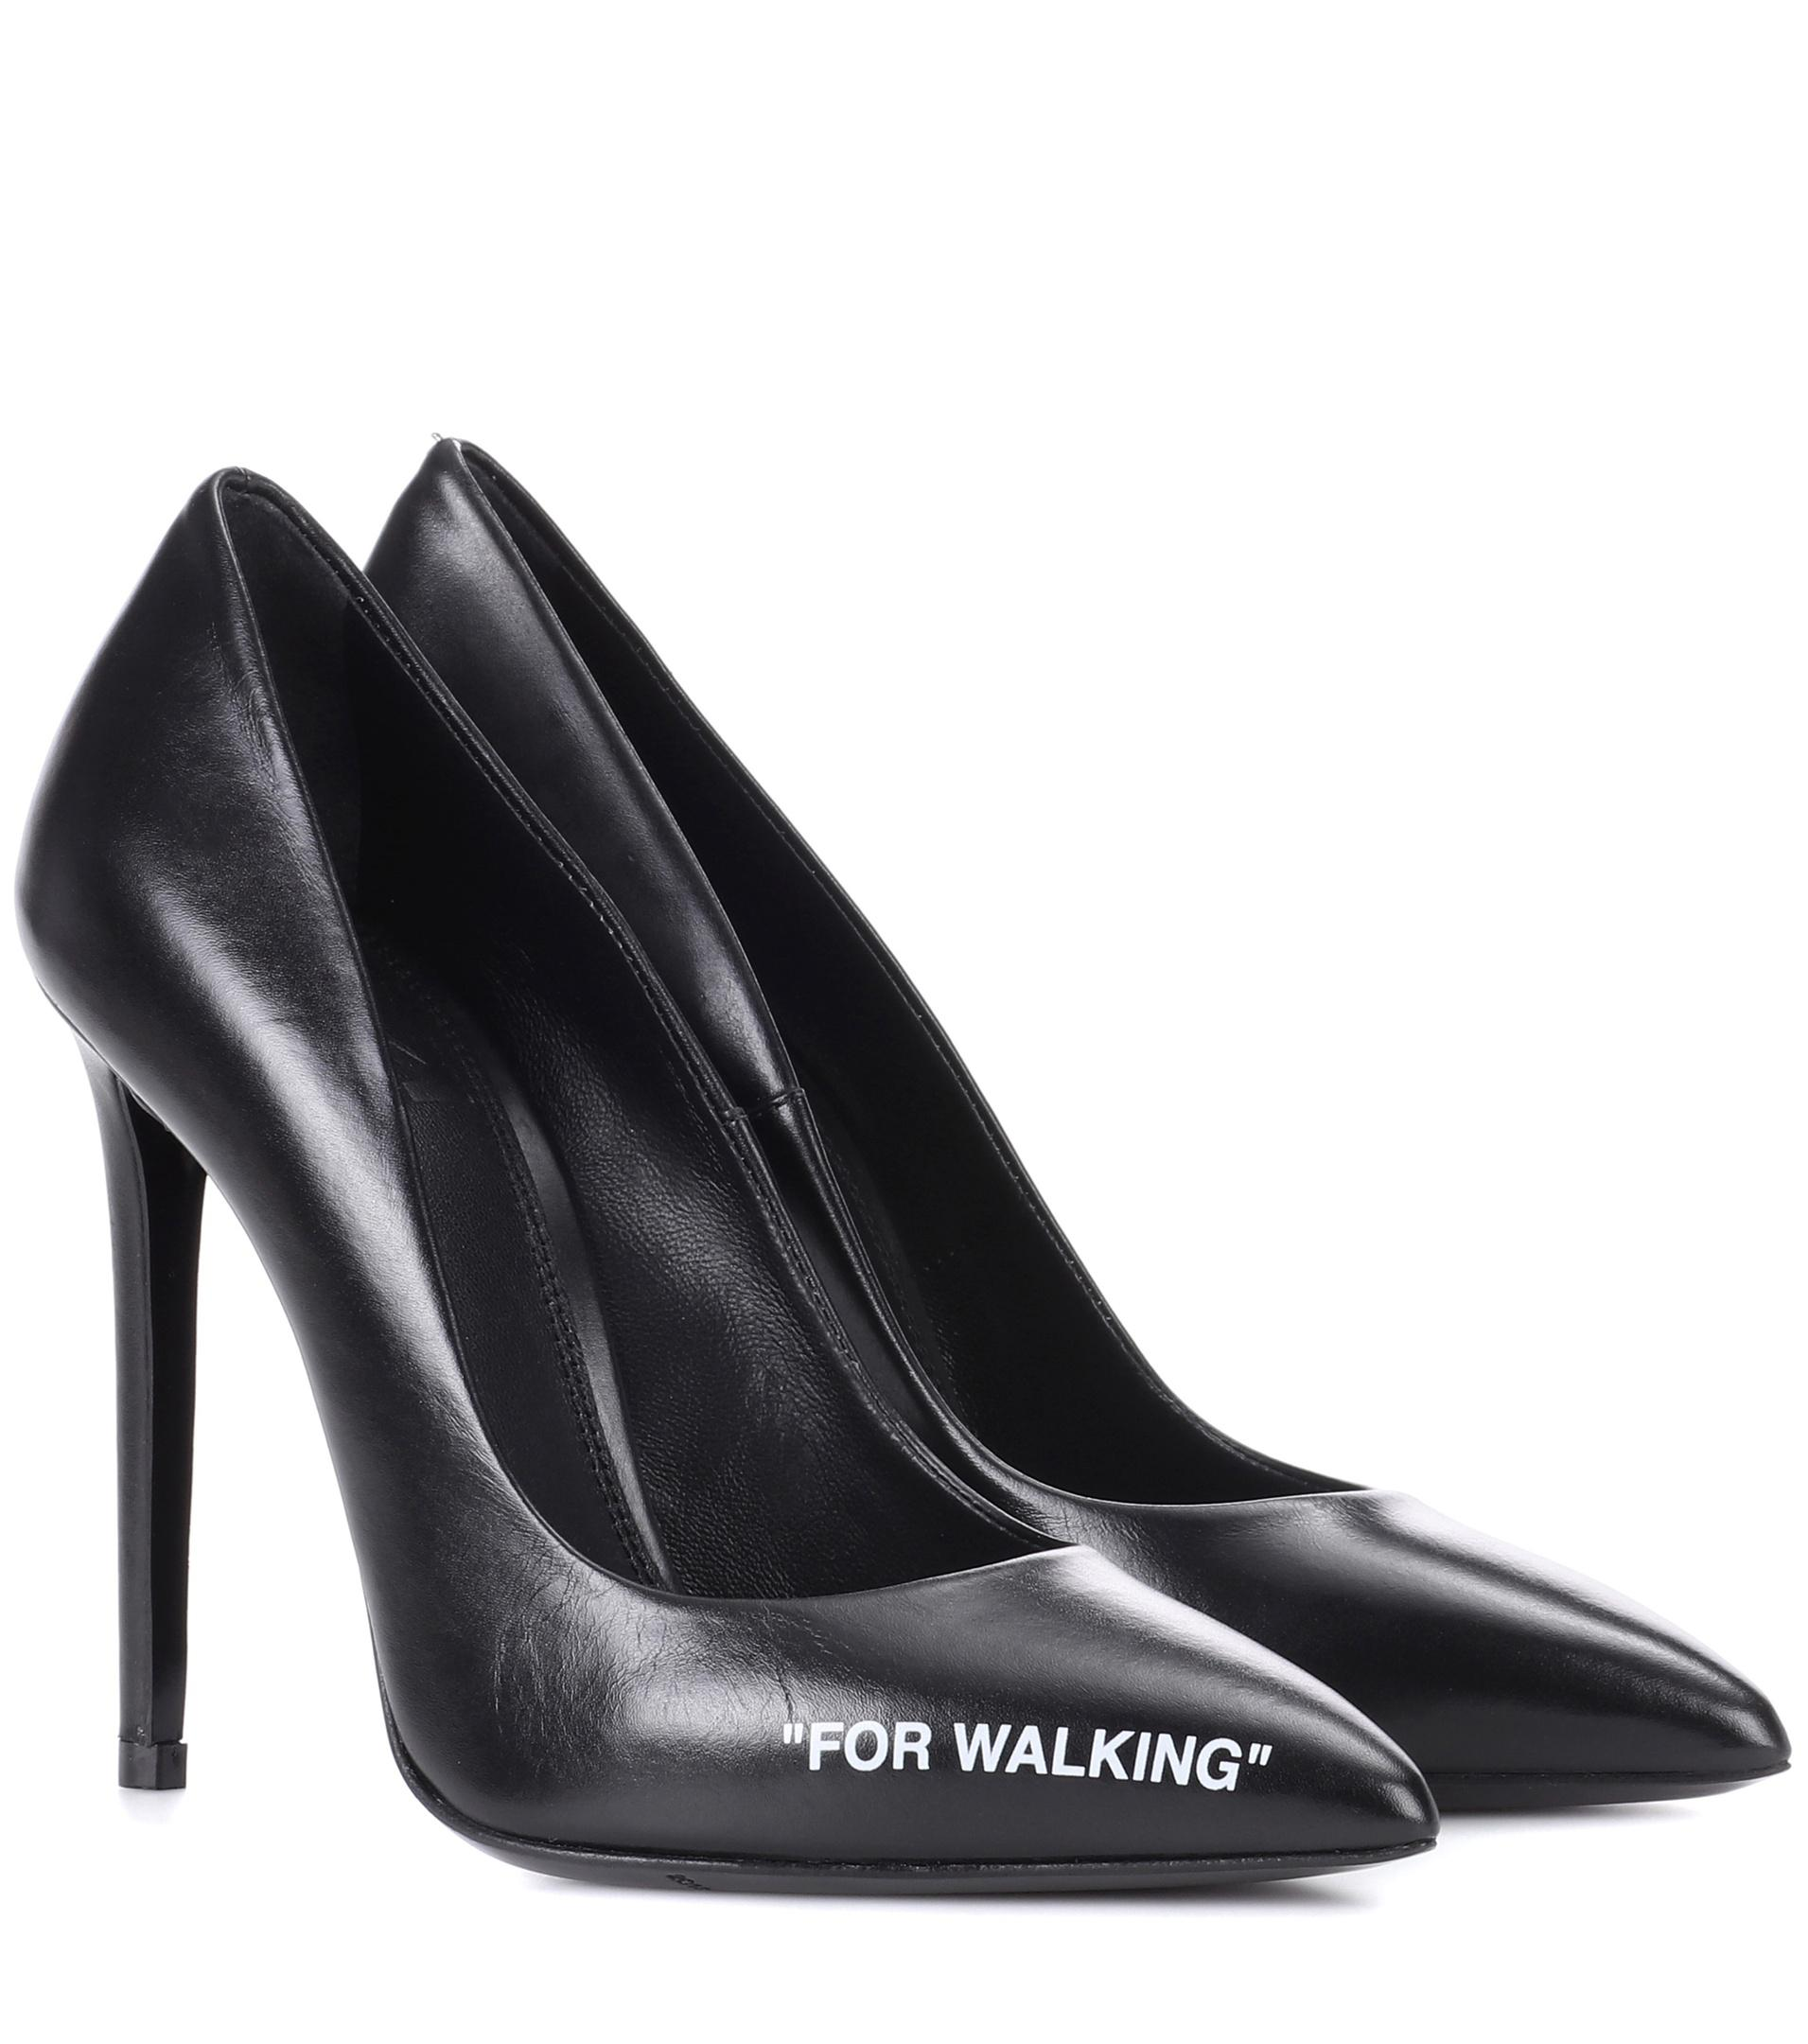 Free Shipping For Cheap Black For Walking Stiletto Heels Off-white Cheap Sale In China Buy Cheap Newest Real Cheap Price Exclusive Cheap Price x7pGI